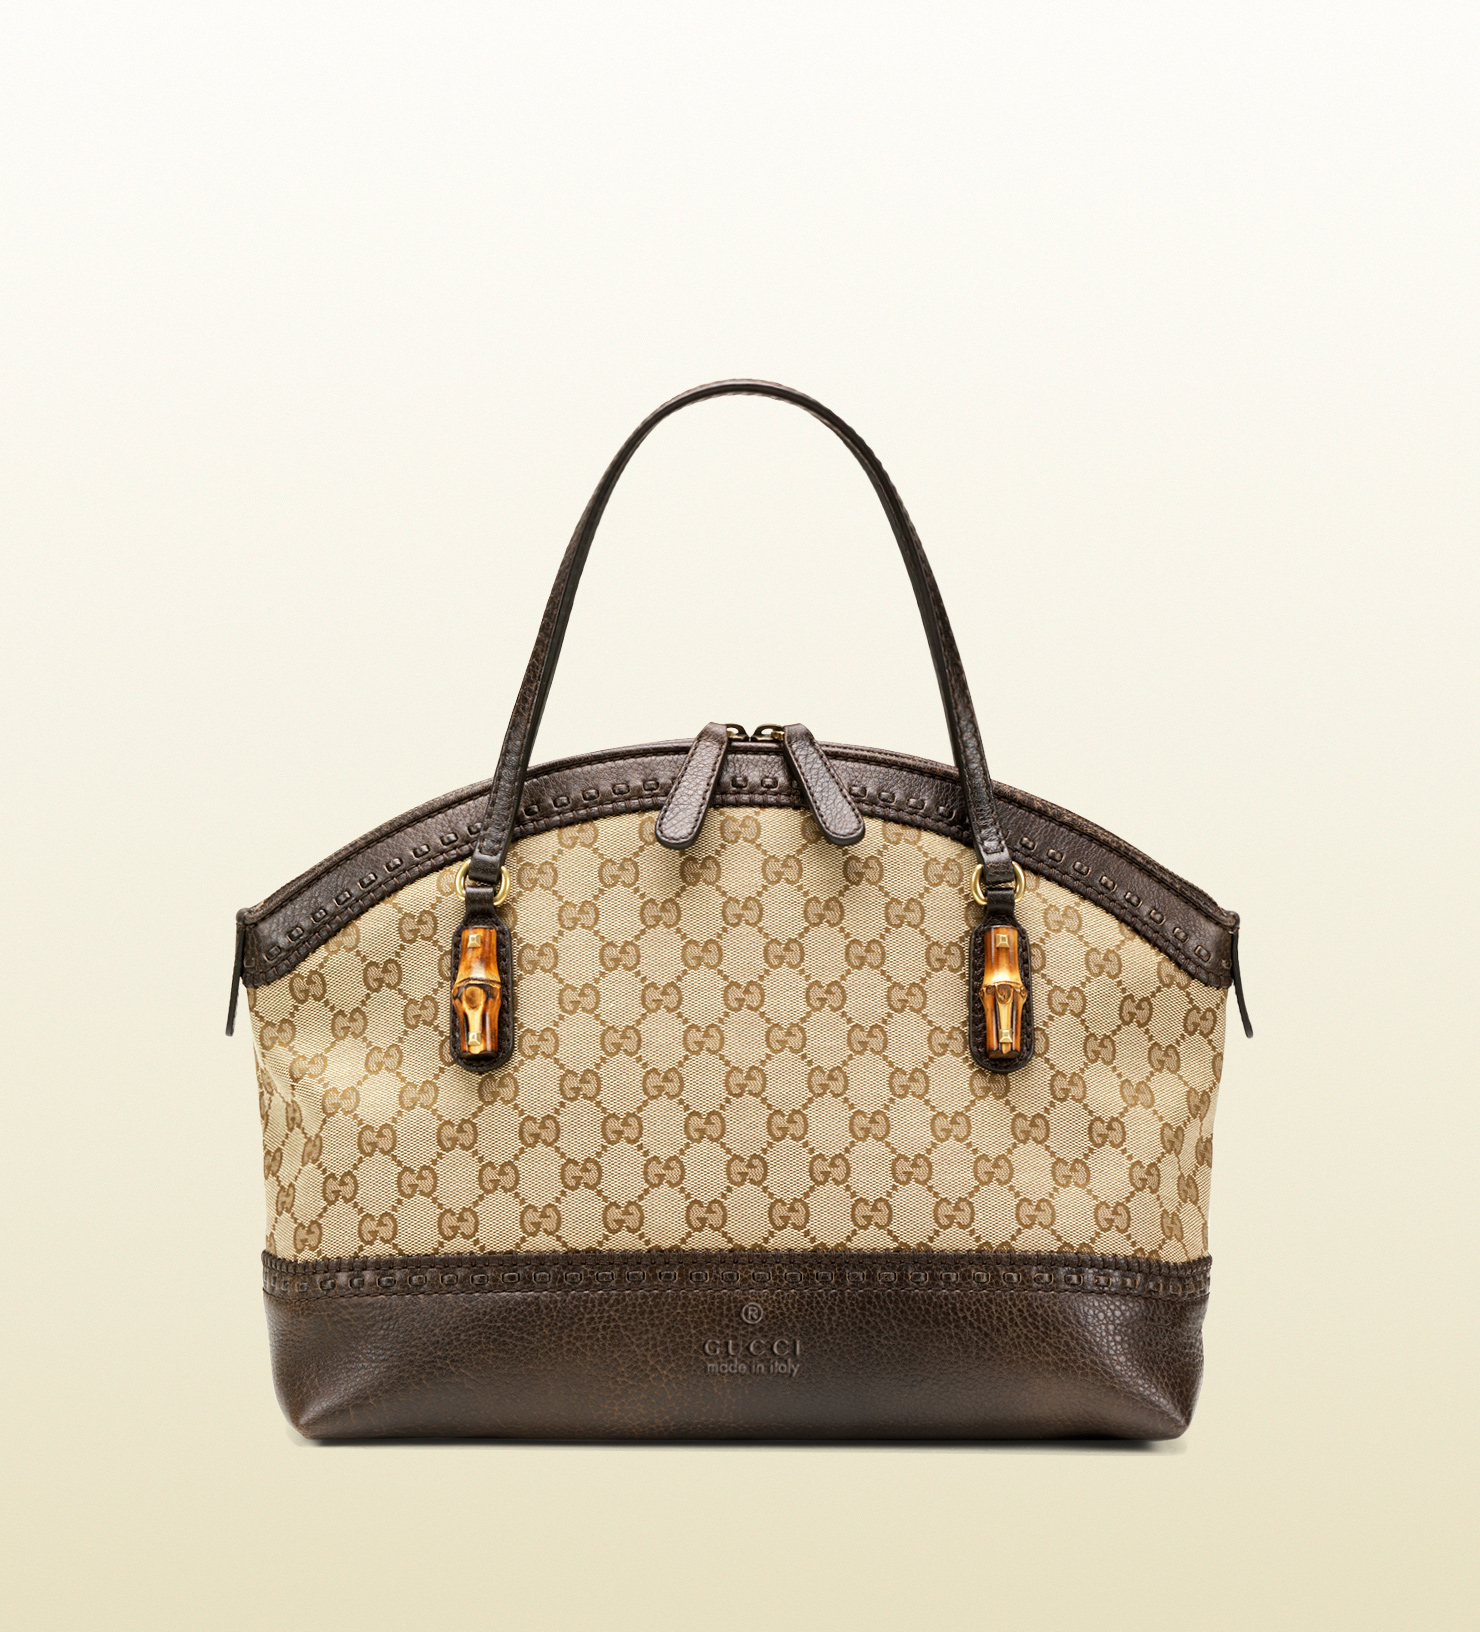 abcc96e2a3f8 Lyst - Gucci Laidback Crafty Original Gg Canvas Top Handle Bag in Brown for  Men